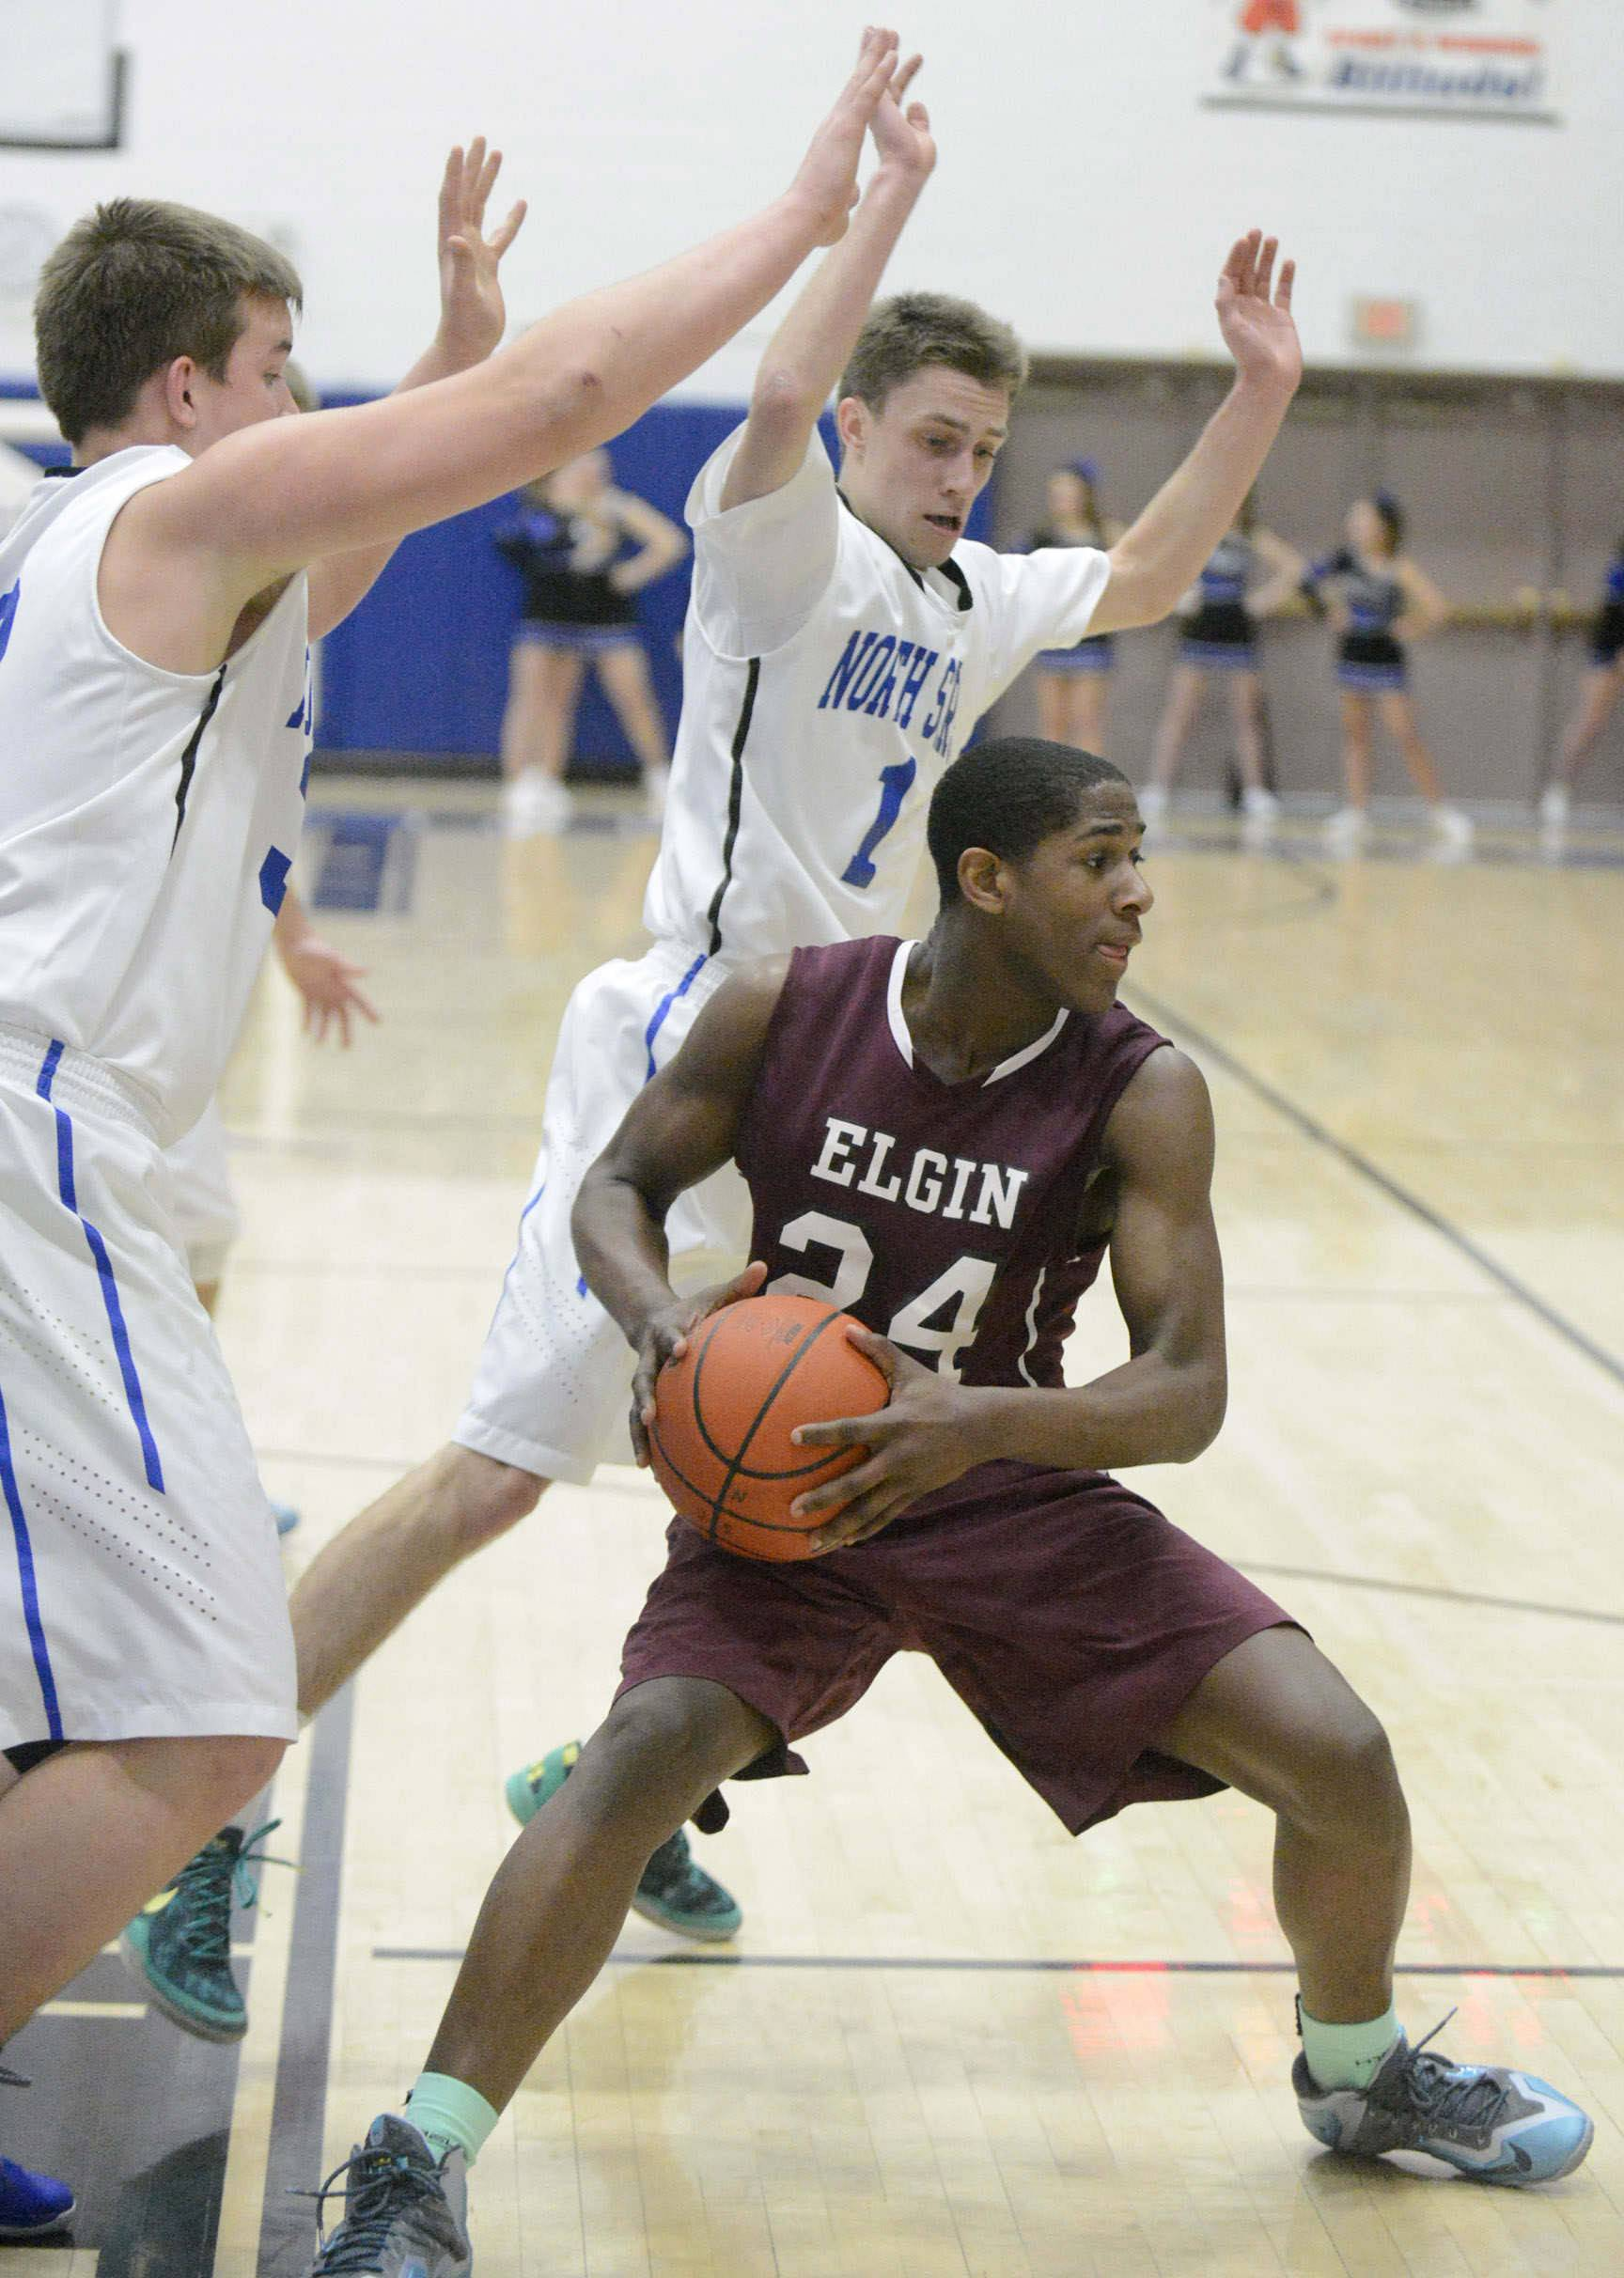 Images from the Elgin vs. St. Charles North boys basketball game Tuesday, February 11, 2014.